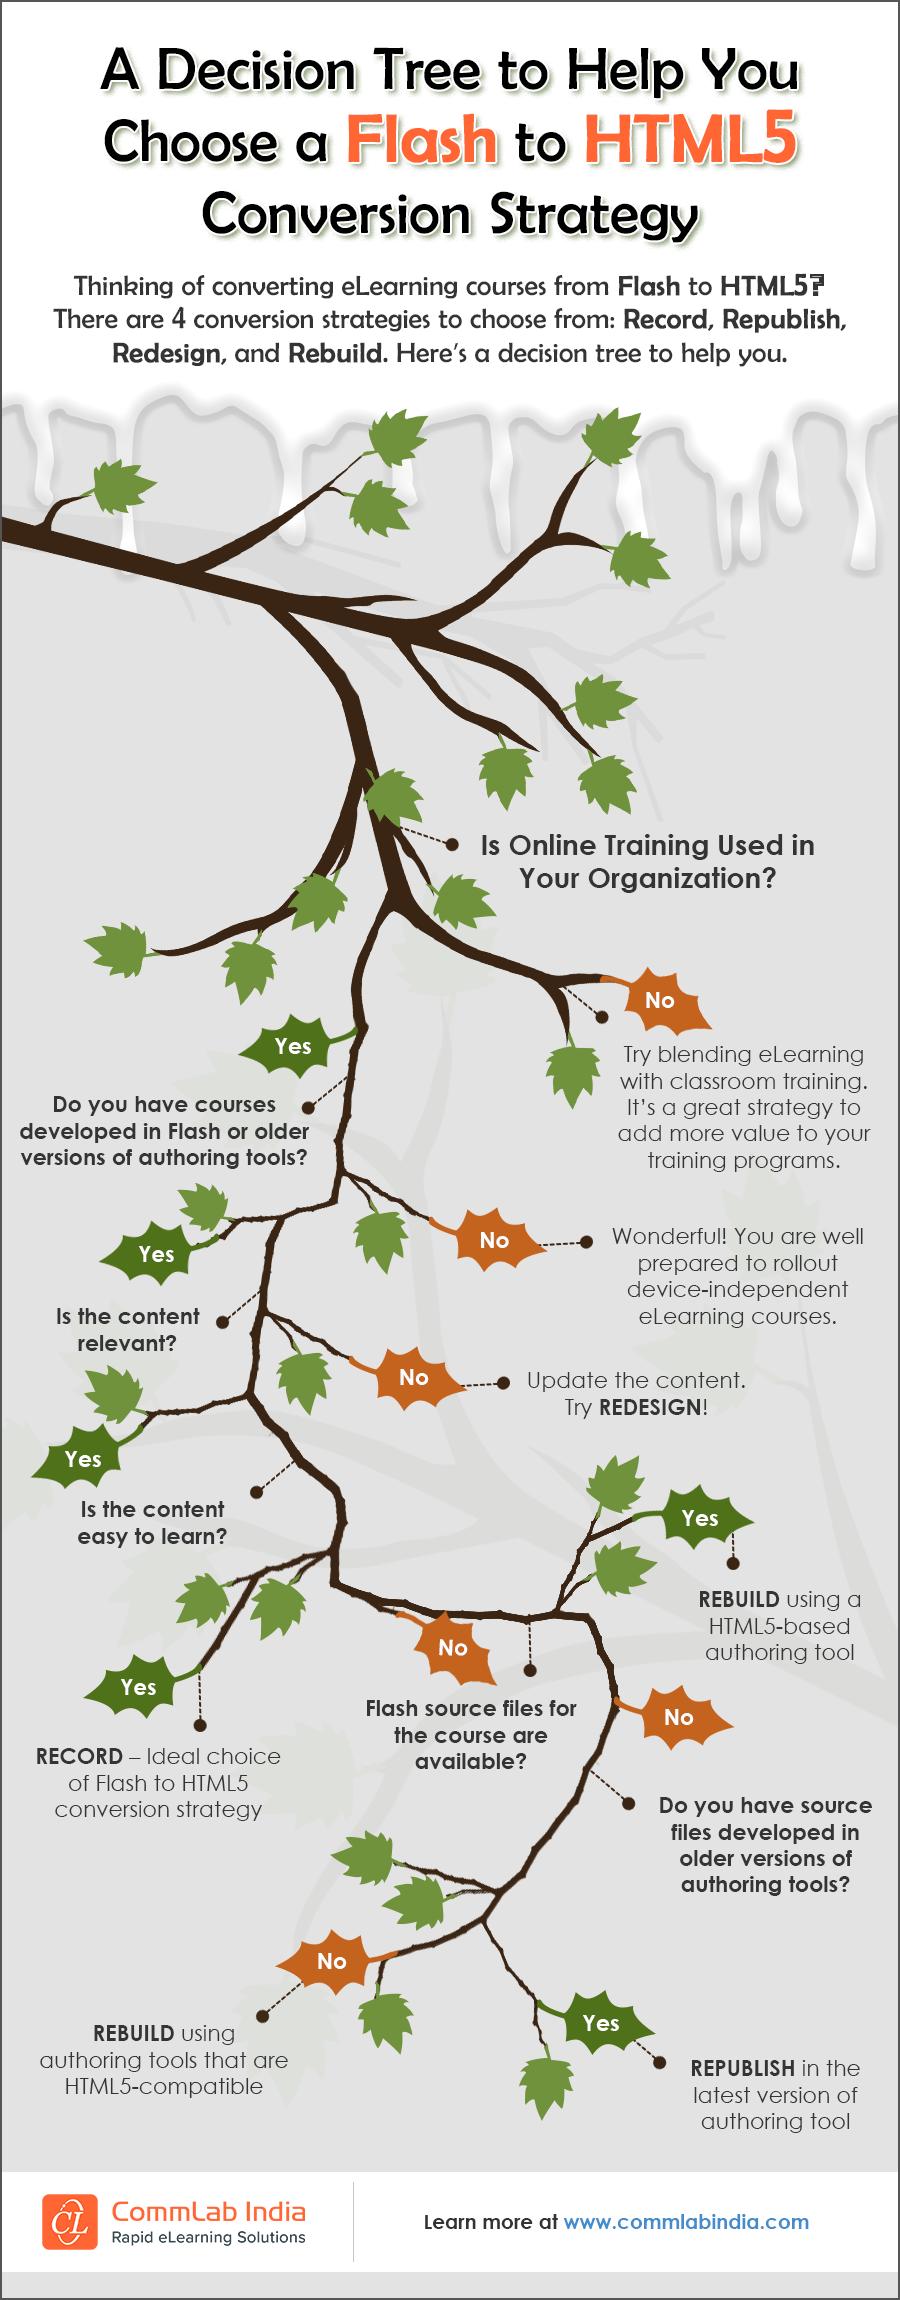 A Decision Tree to Help You Choose a Flash to HTML5 Conversion Strategy [Infographic]